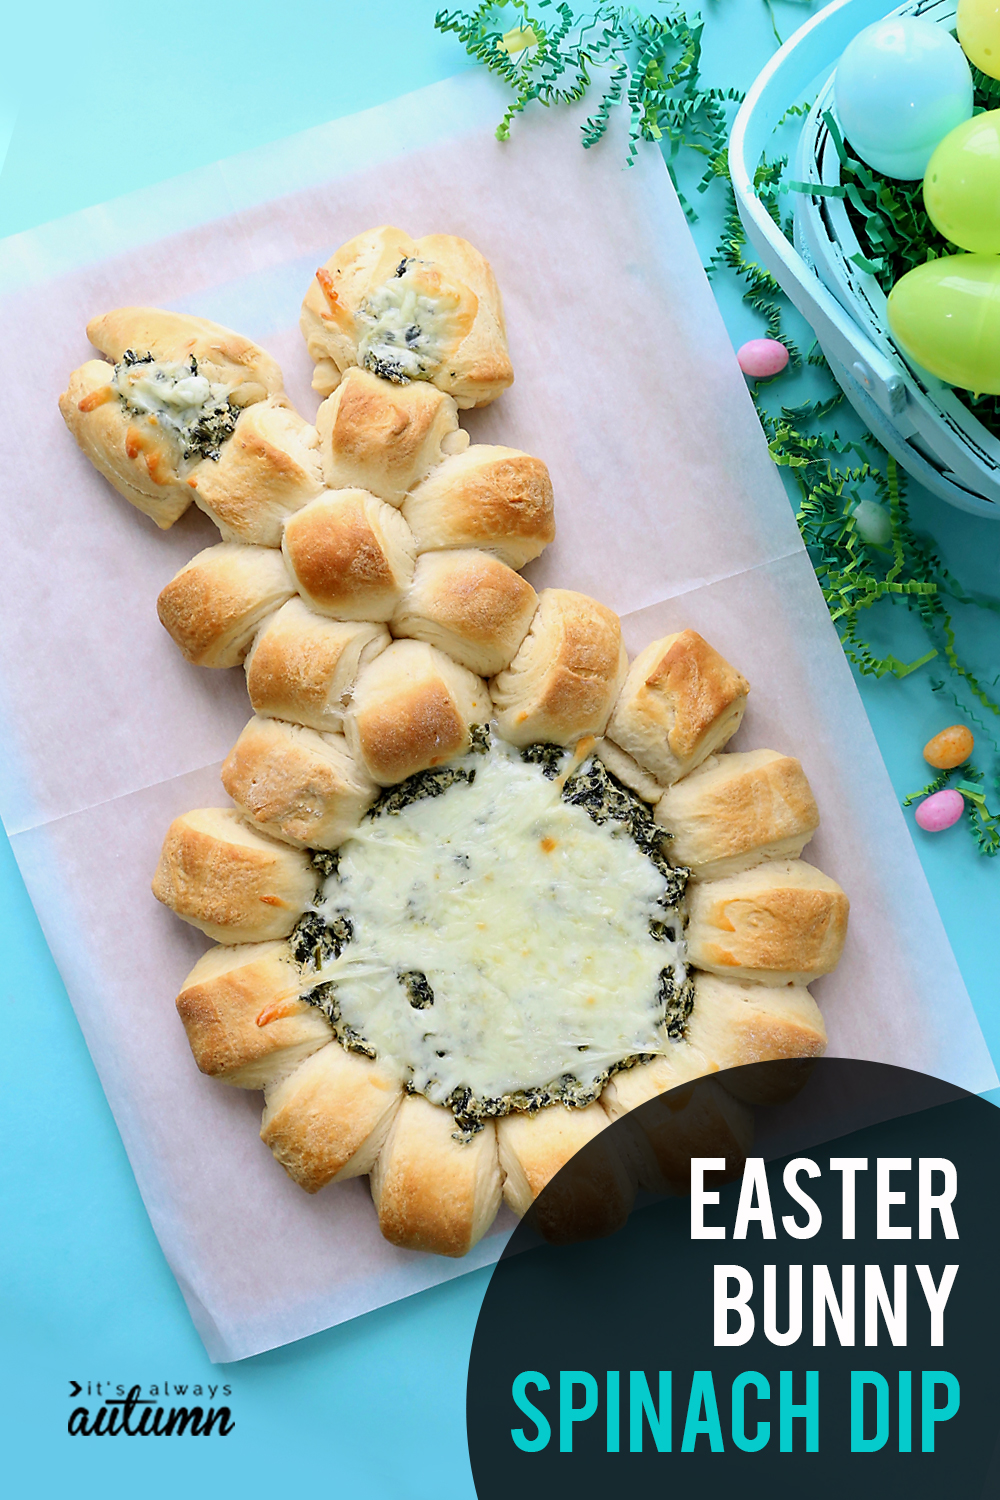 Easter Bunny spinach dip   This super easy Easter appetizer is made with refrigerated crescent dough and creamy homemade spinach dip.